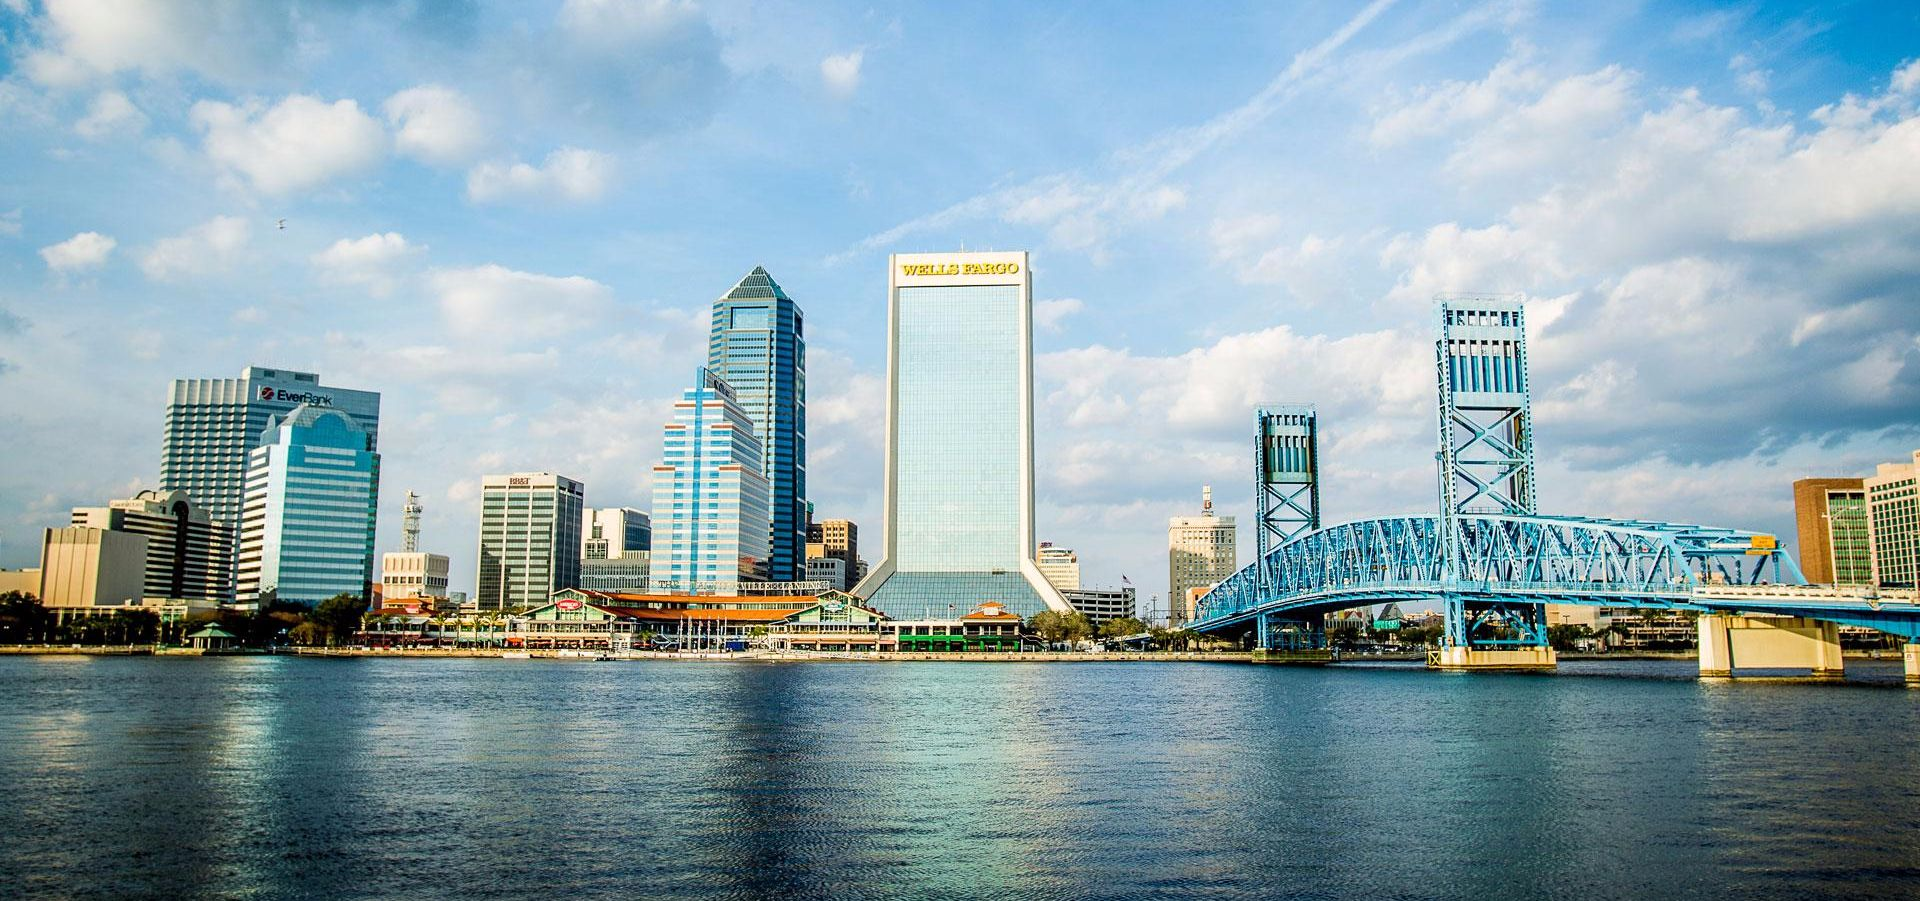 City of Jacksonville - photo 6